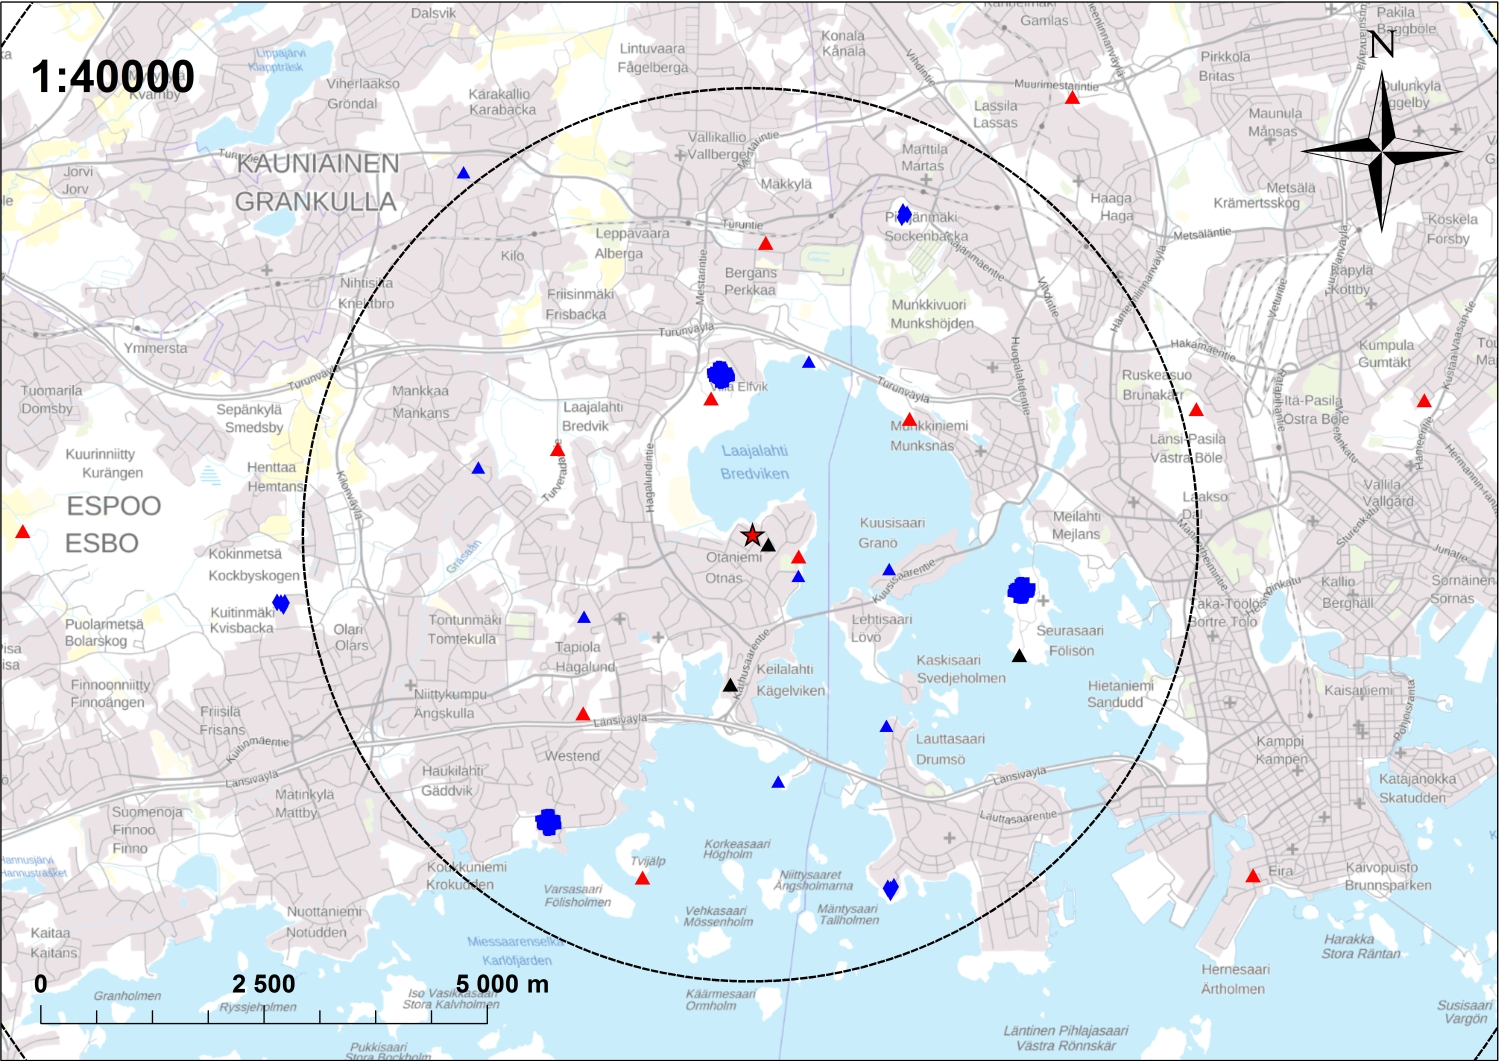 Seismic network used to record the seismic response of the 2018 St1 Otaniemi EGS stimulation. The star marks the location of the 6 km deep borehole on the campus of Aalto University, and the symbols indicate seismic stations.